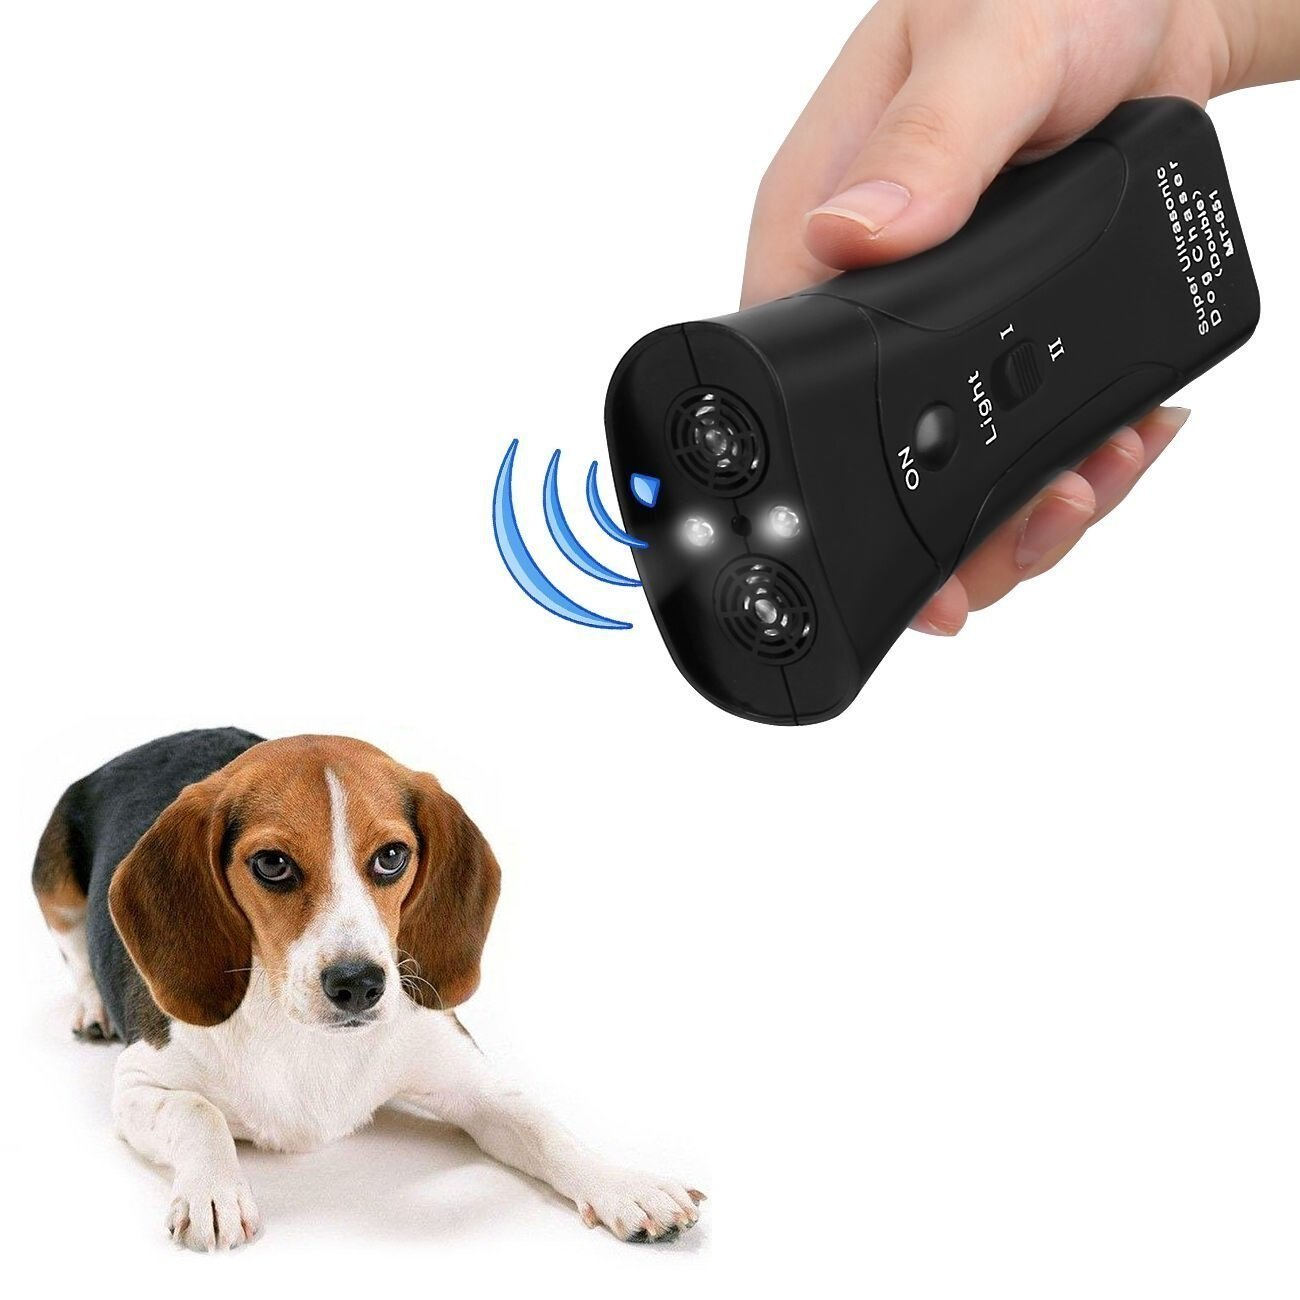 instecho UI239 Repellent Handheld Portable Electronic Trainer with Bright LED Flashlight, Waterproof Dog, S, Sonic Barking Deterrents